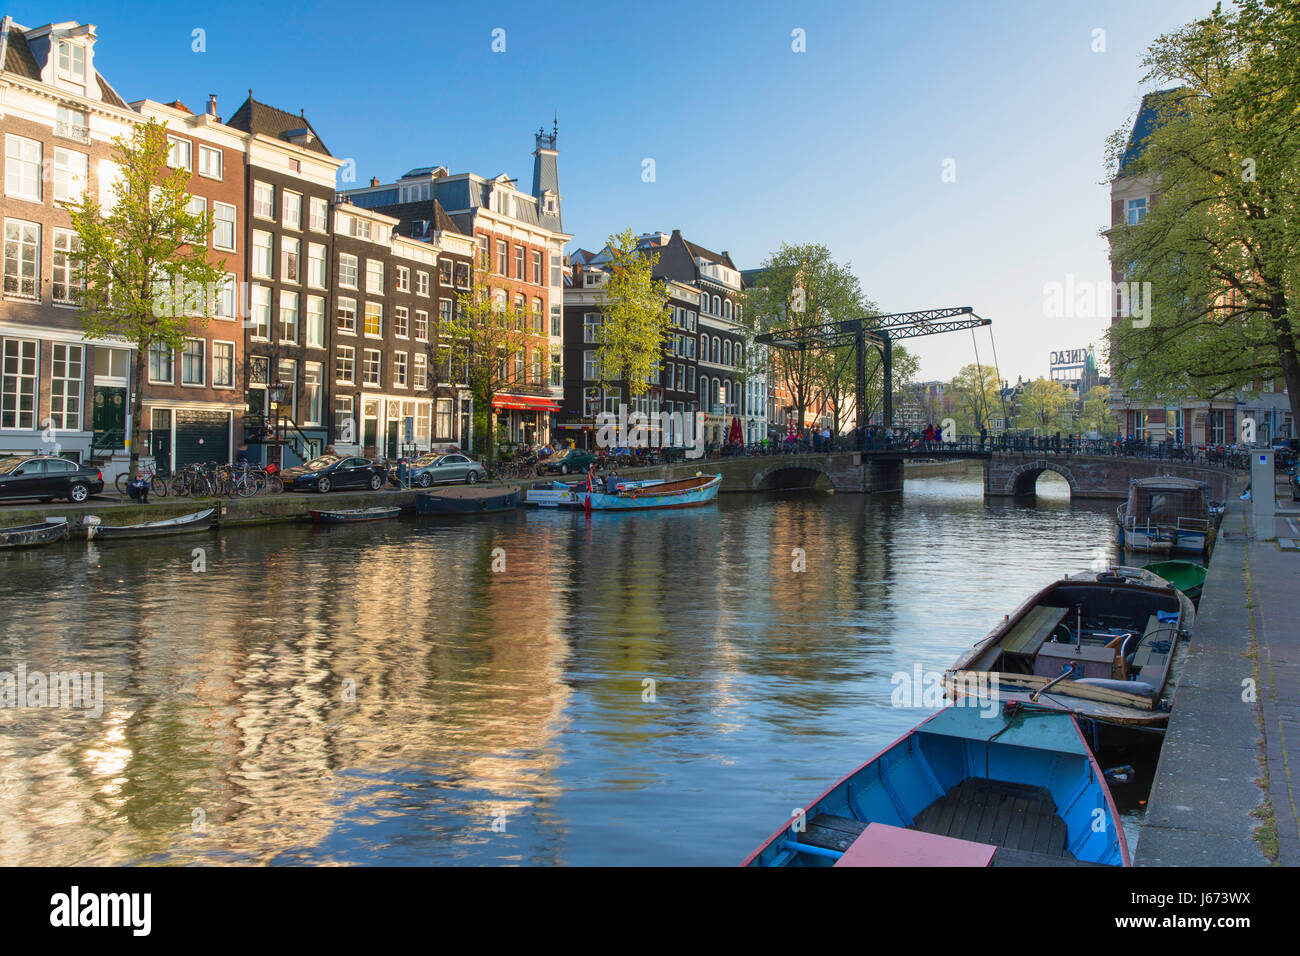 Kloveniersburgwal canal, Amsterdam, Netherlands - Stock Image